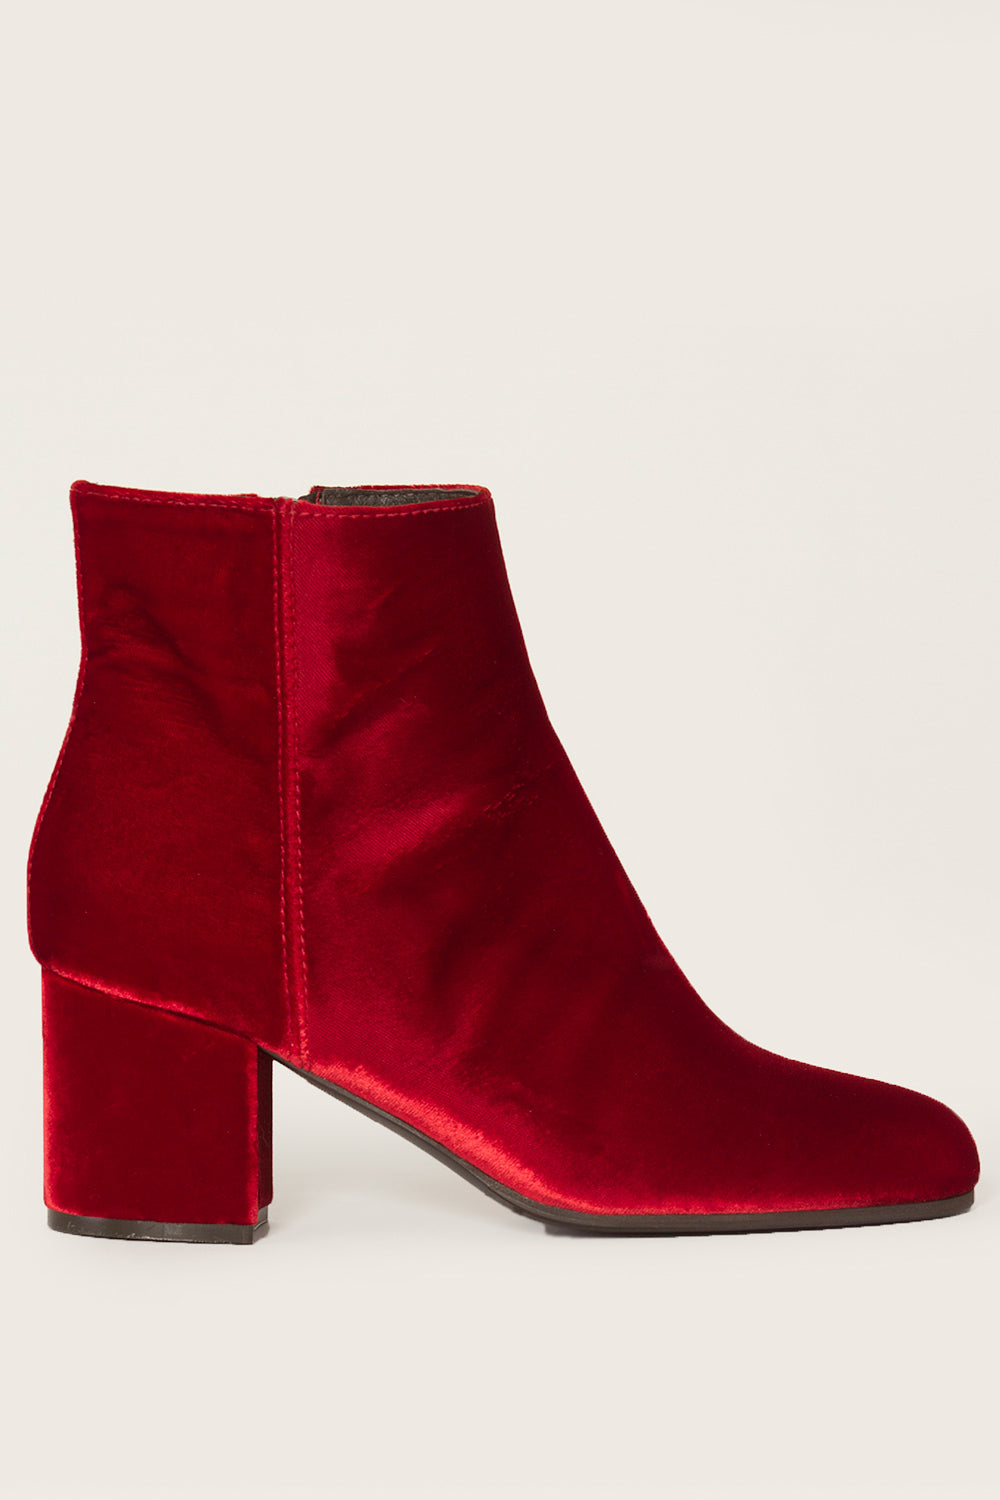 MADISON ET CIEMIA VELVET BOOTIES27523